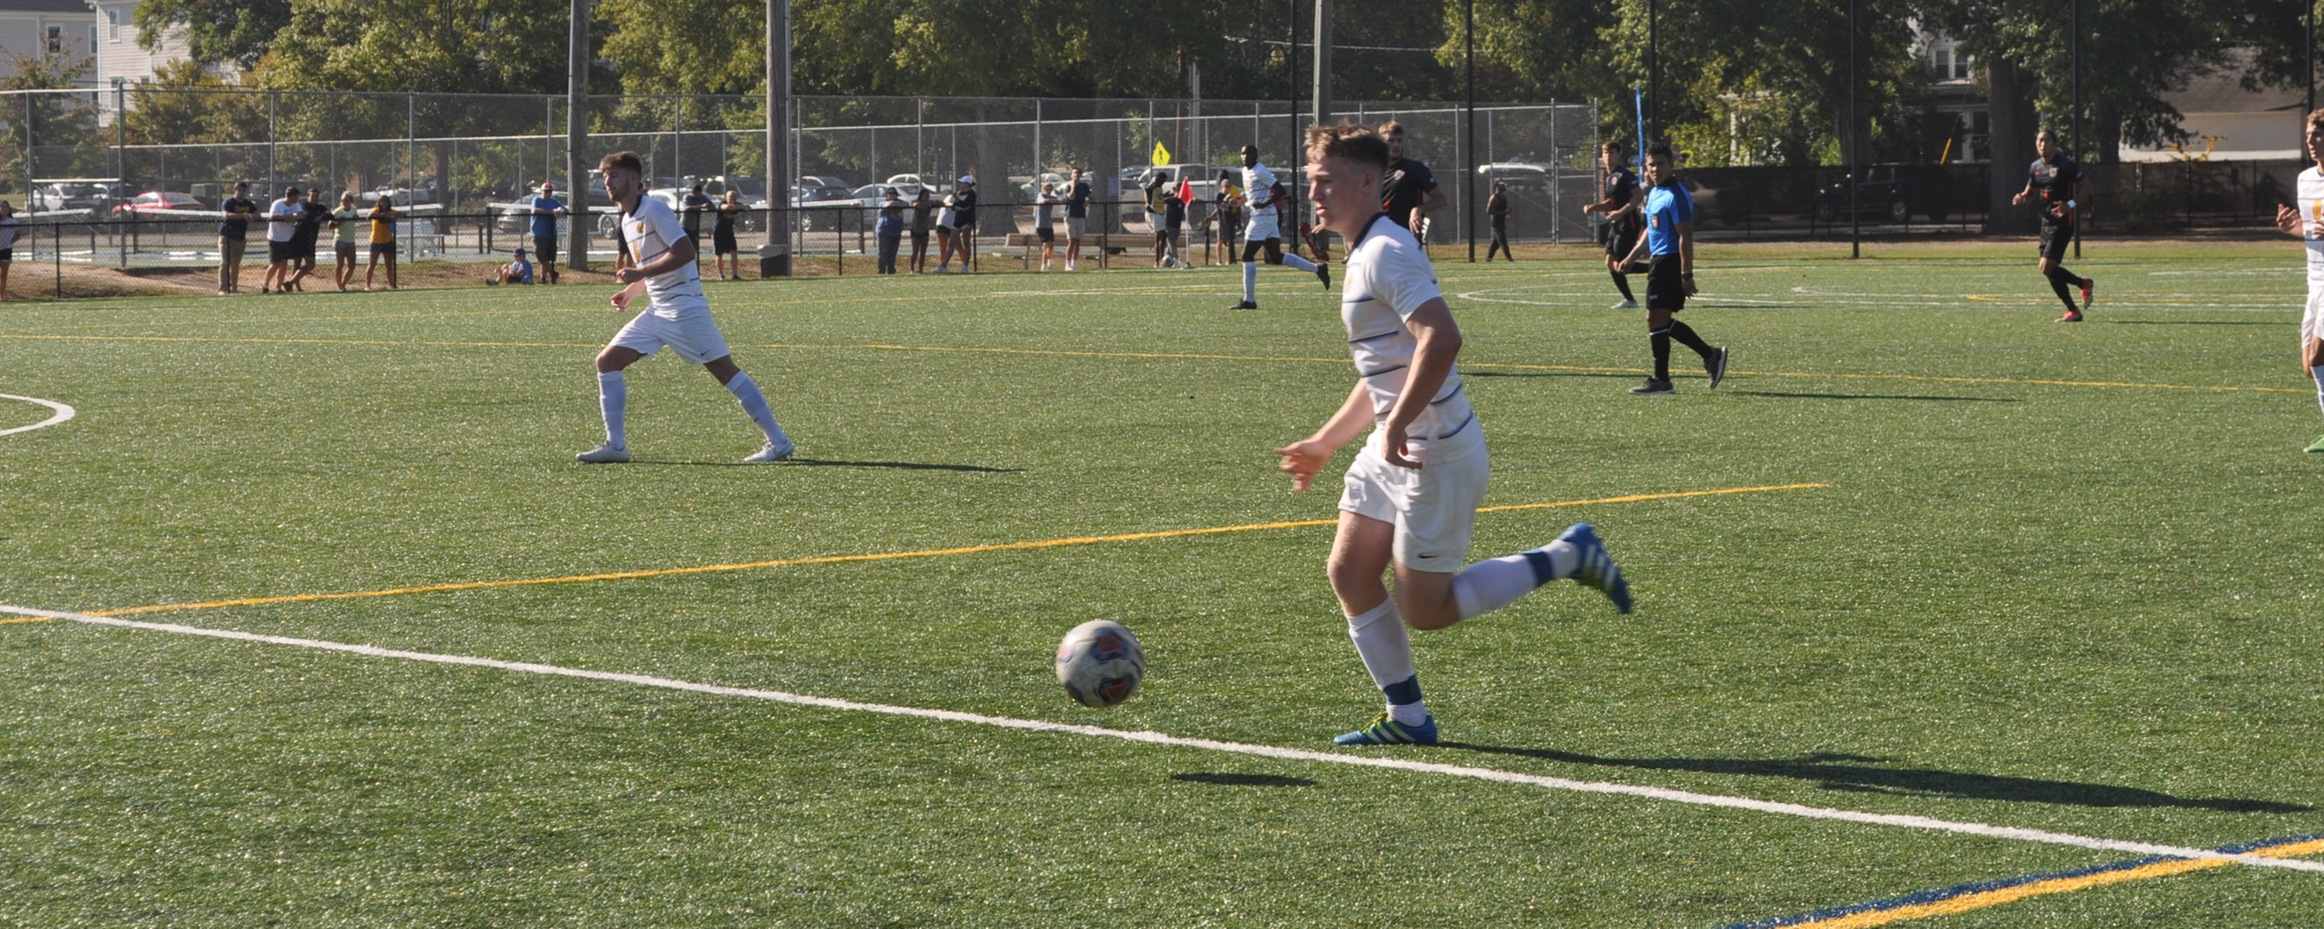 Cobras Come Up Short to Anderson 2-1 in SAC Semifinals